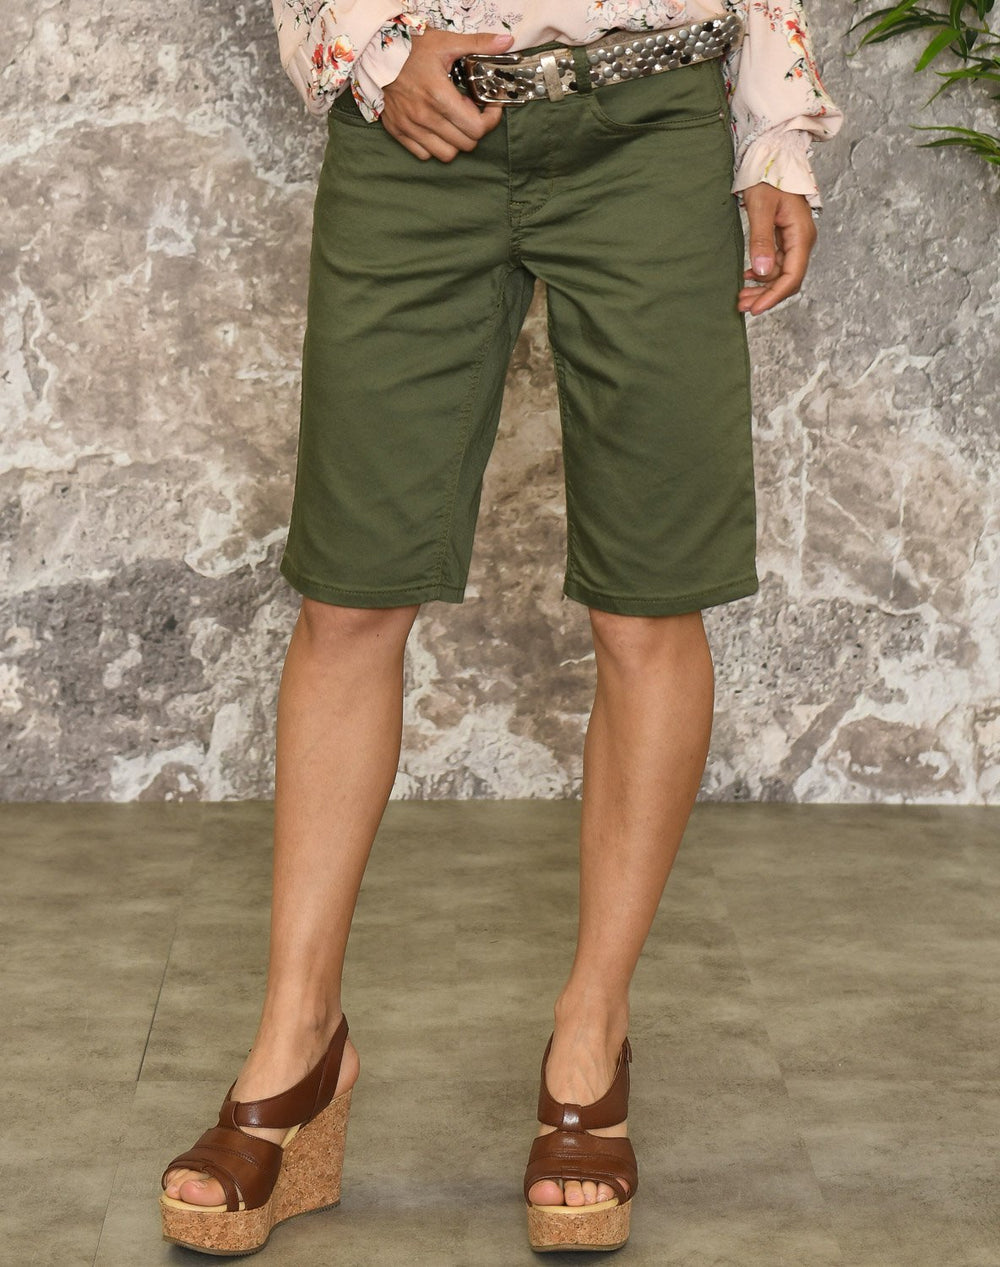 Cream VavaCR shorts burnt olive - Online-Mode